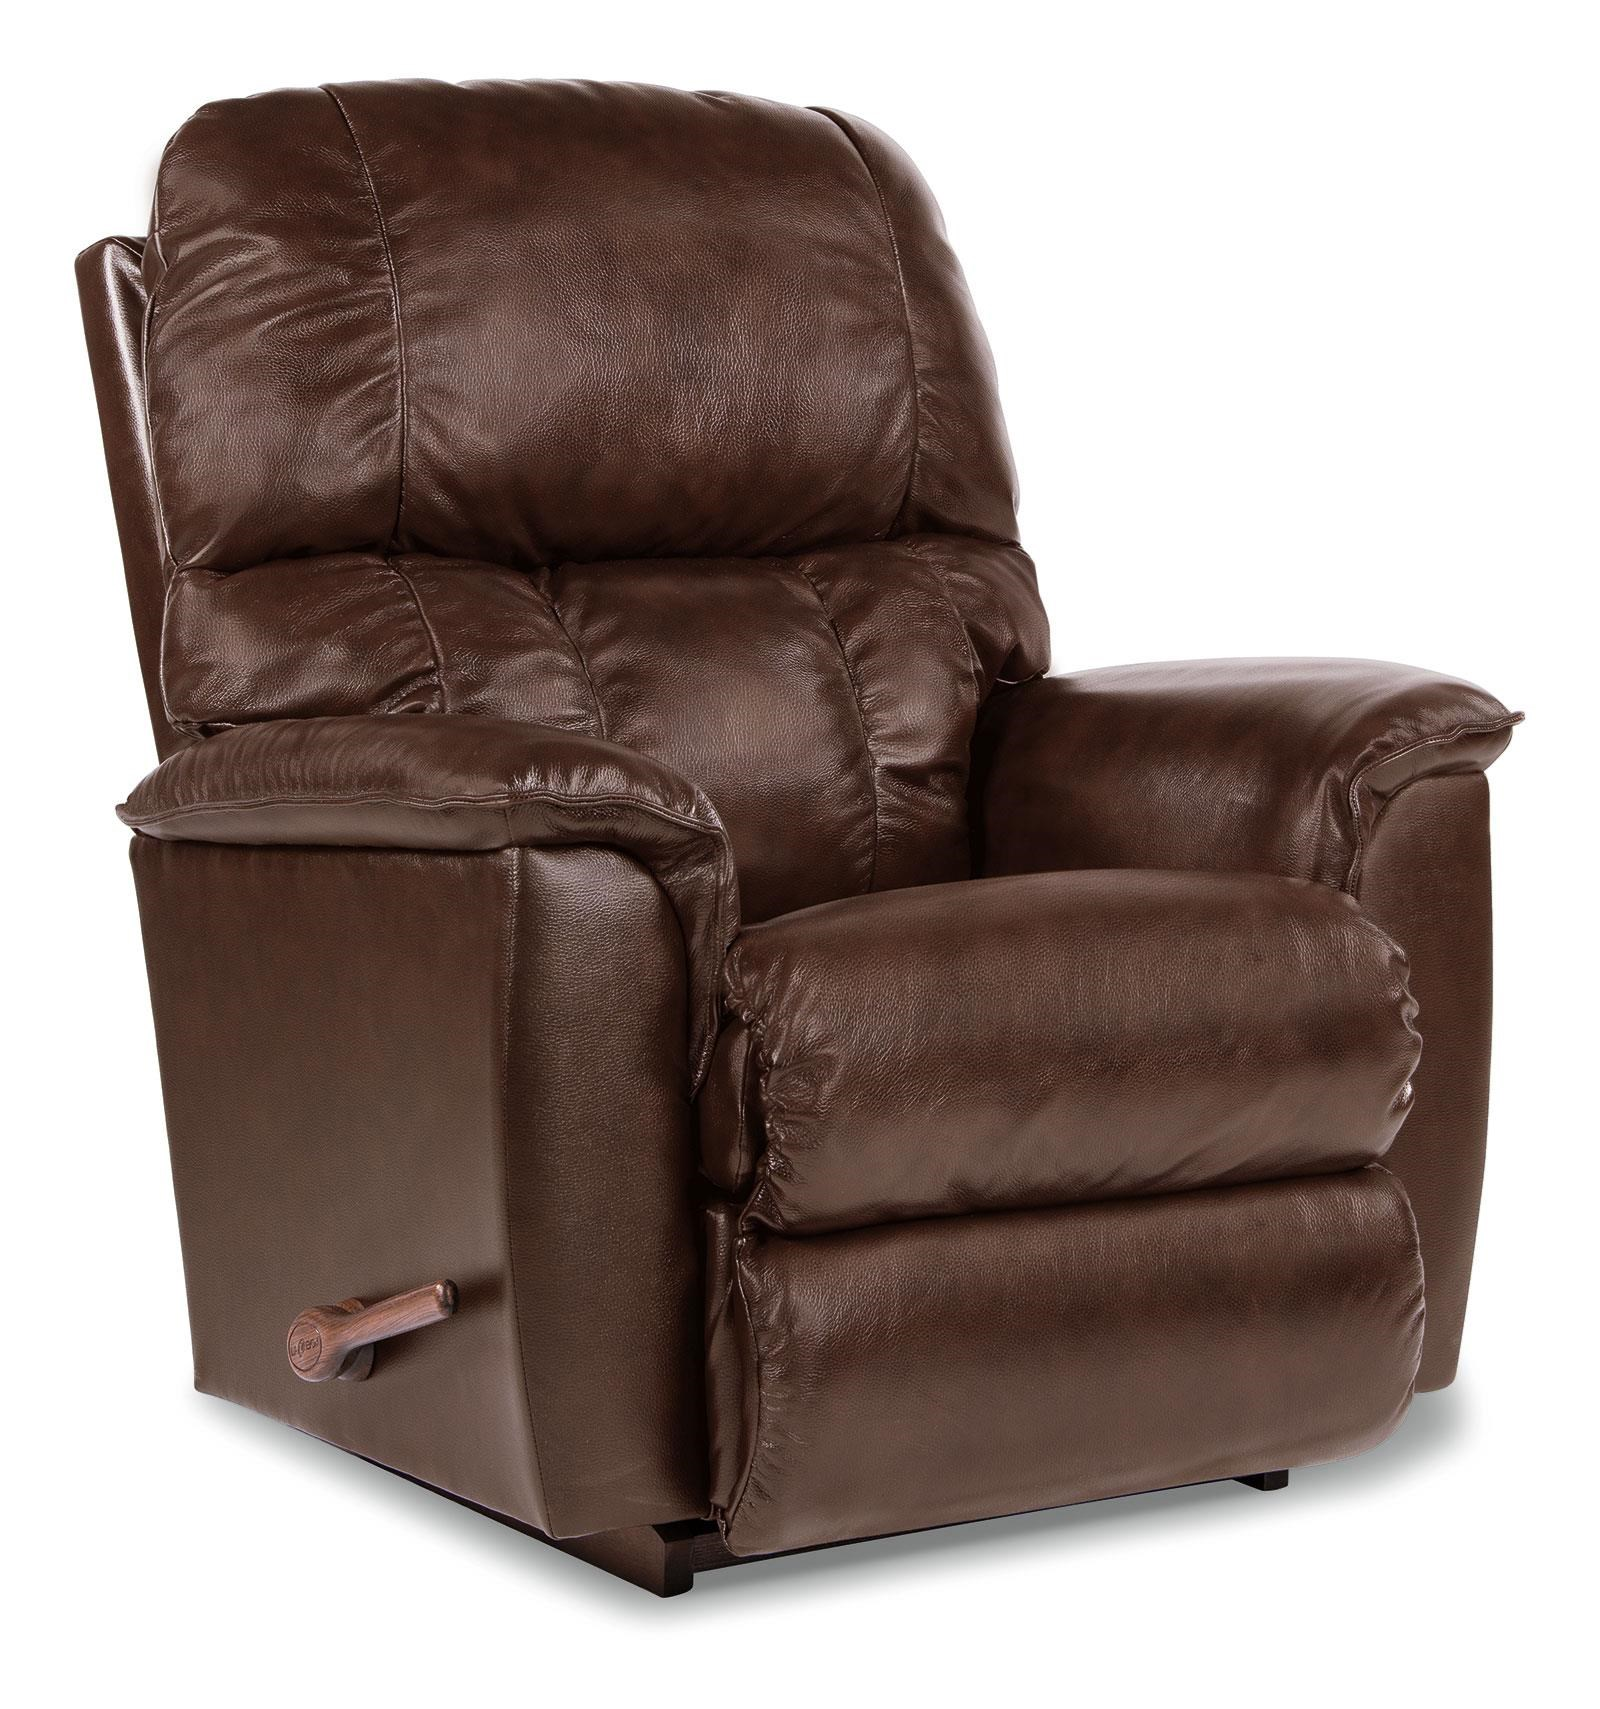 Lazy boy chair and a half recliner - La Z Boy Lawrence Leather Rocker Recliner